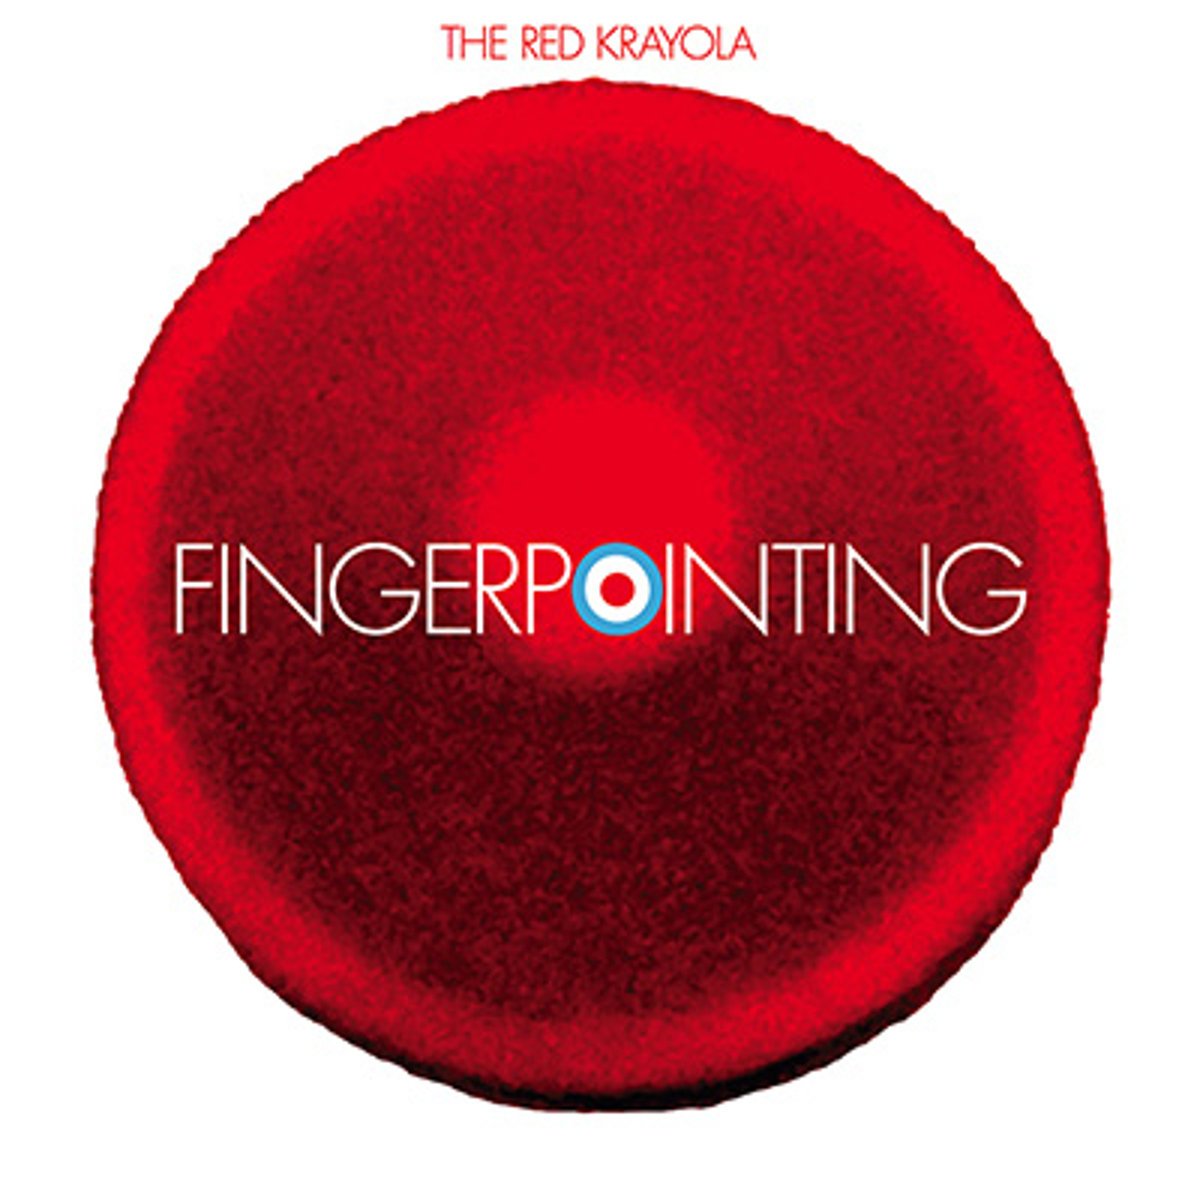 FINGERPOINTING